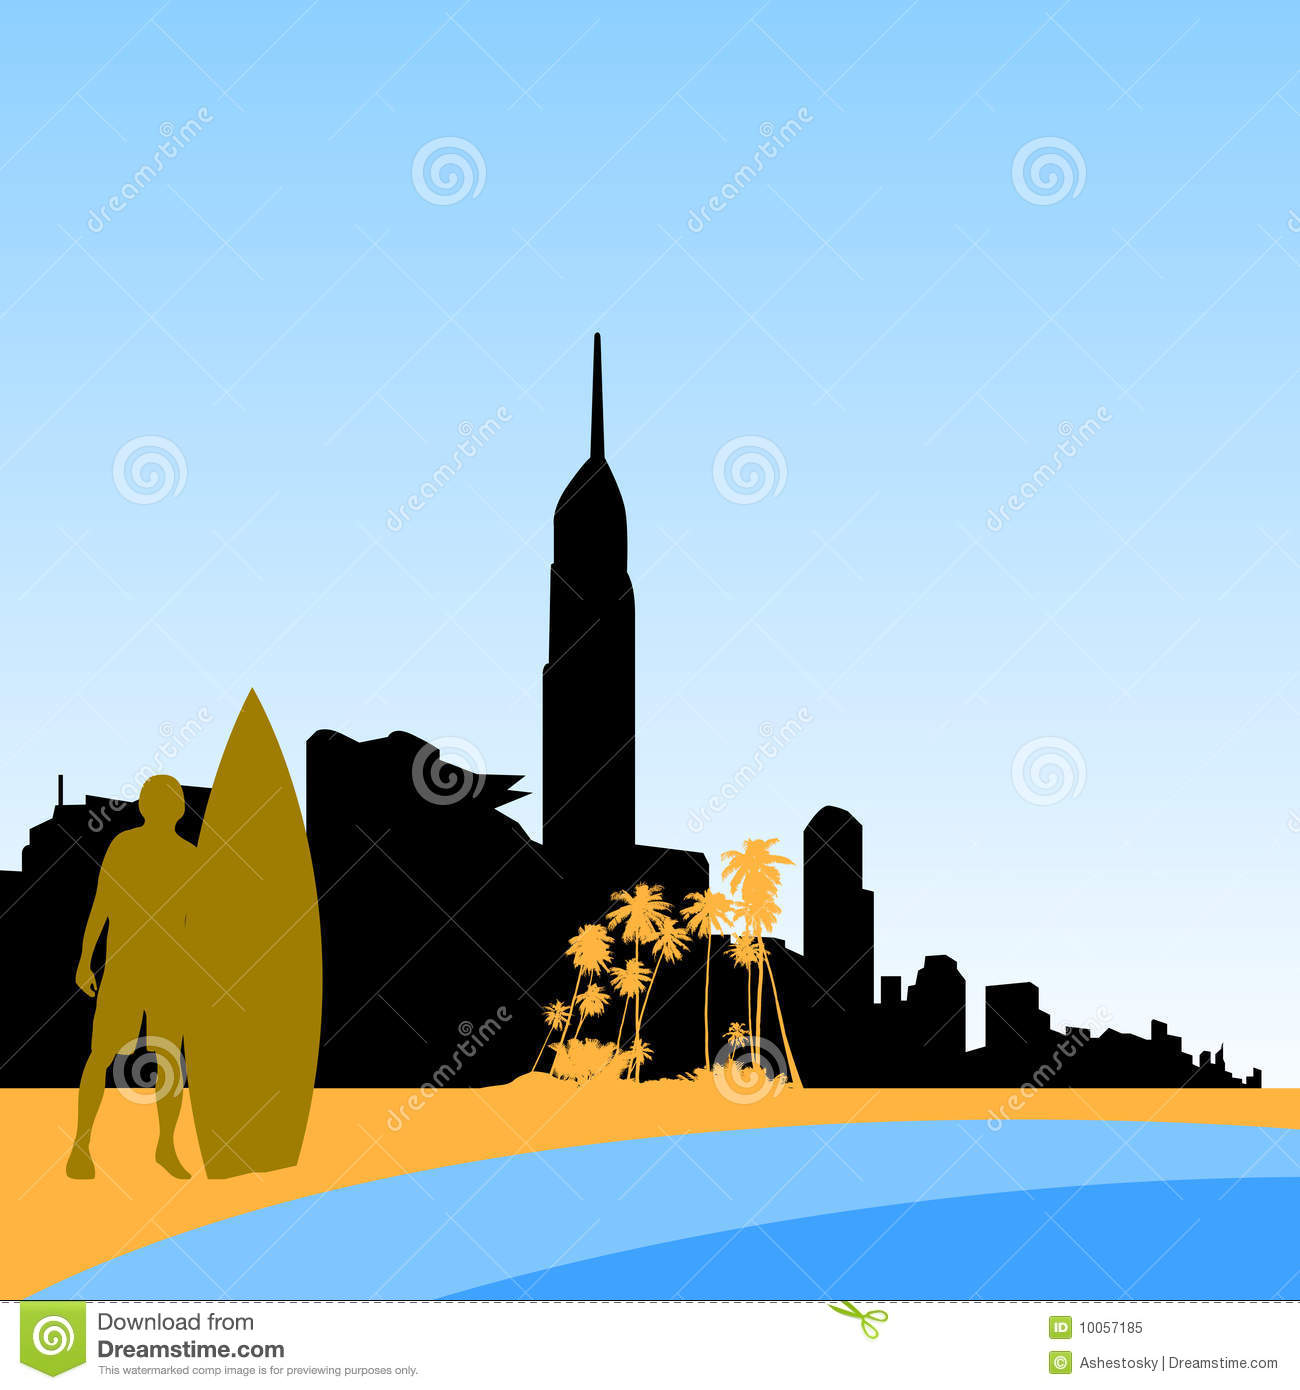 Gold Coast Surfers Paradise Skyline Royalty Free Stock Photo.